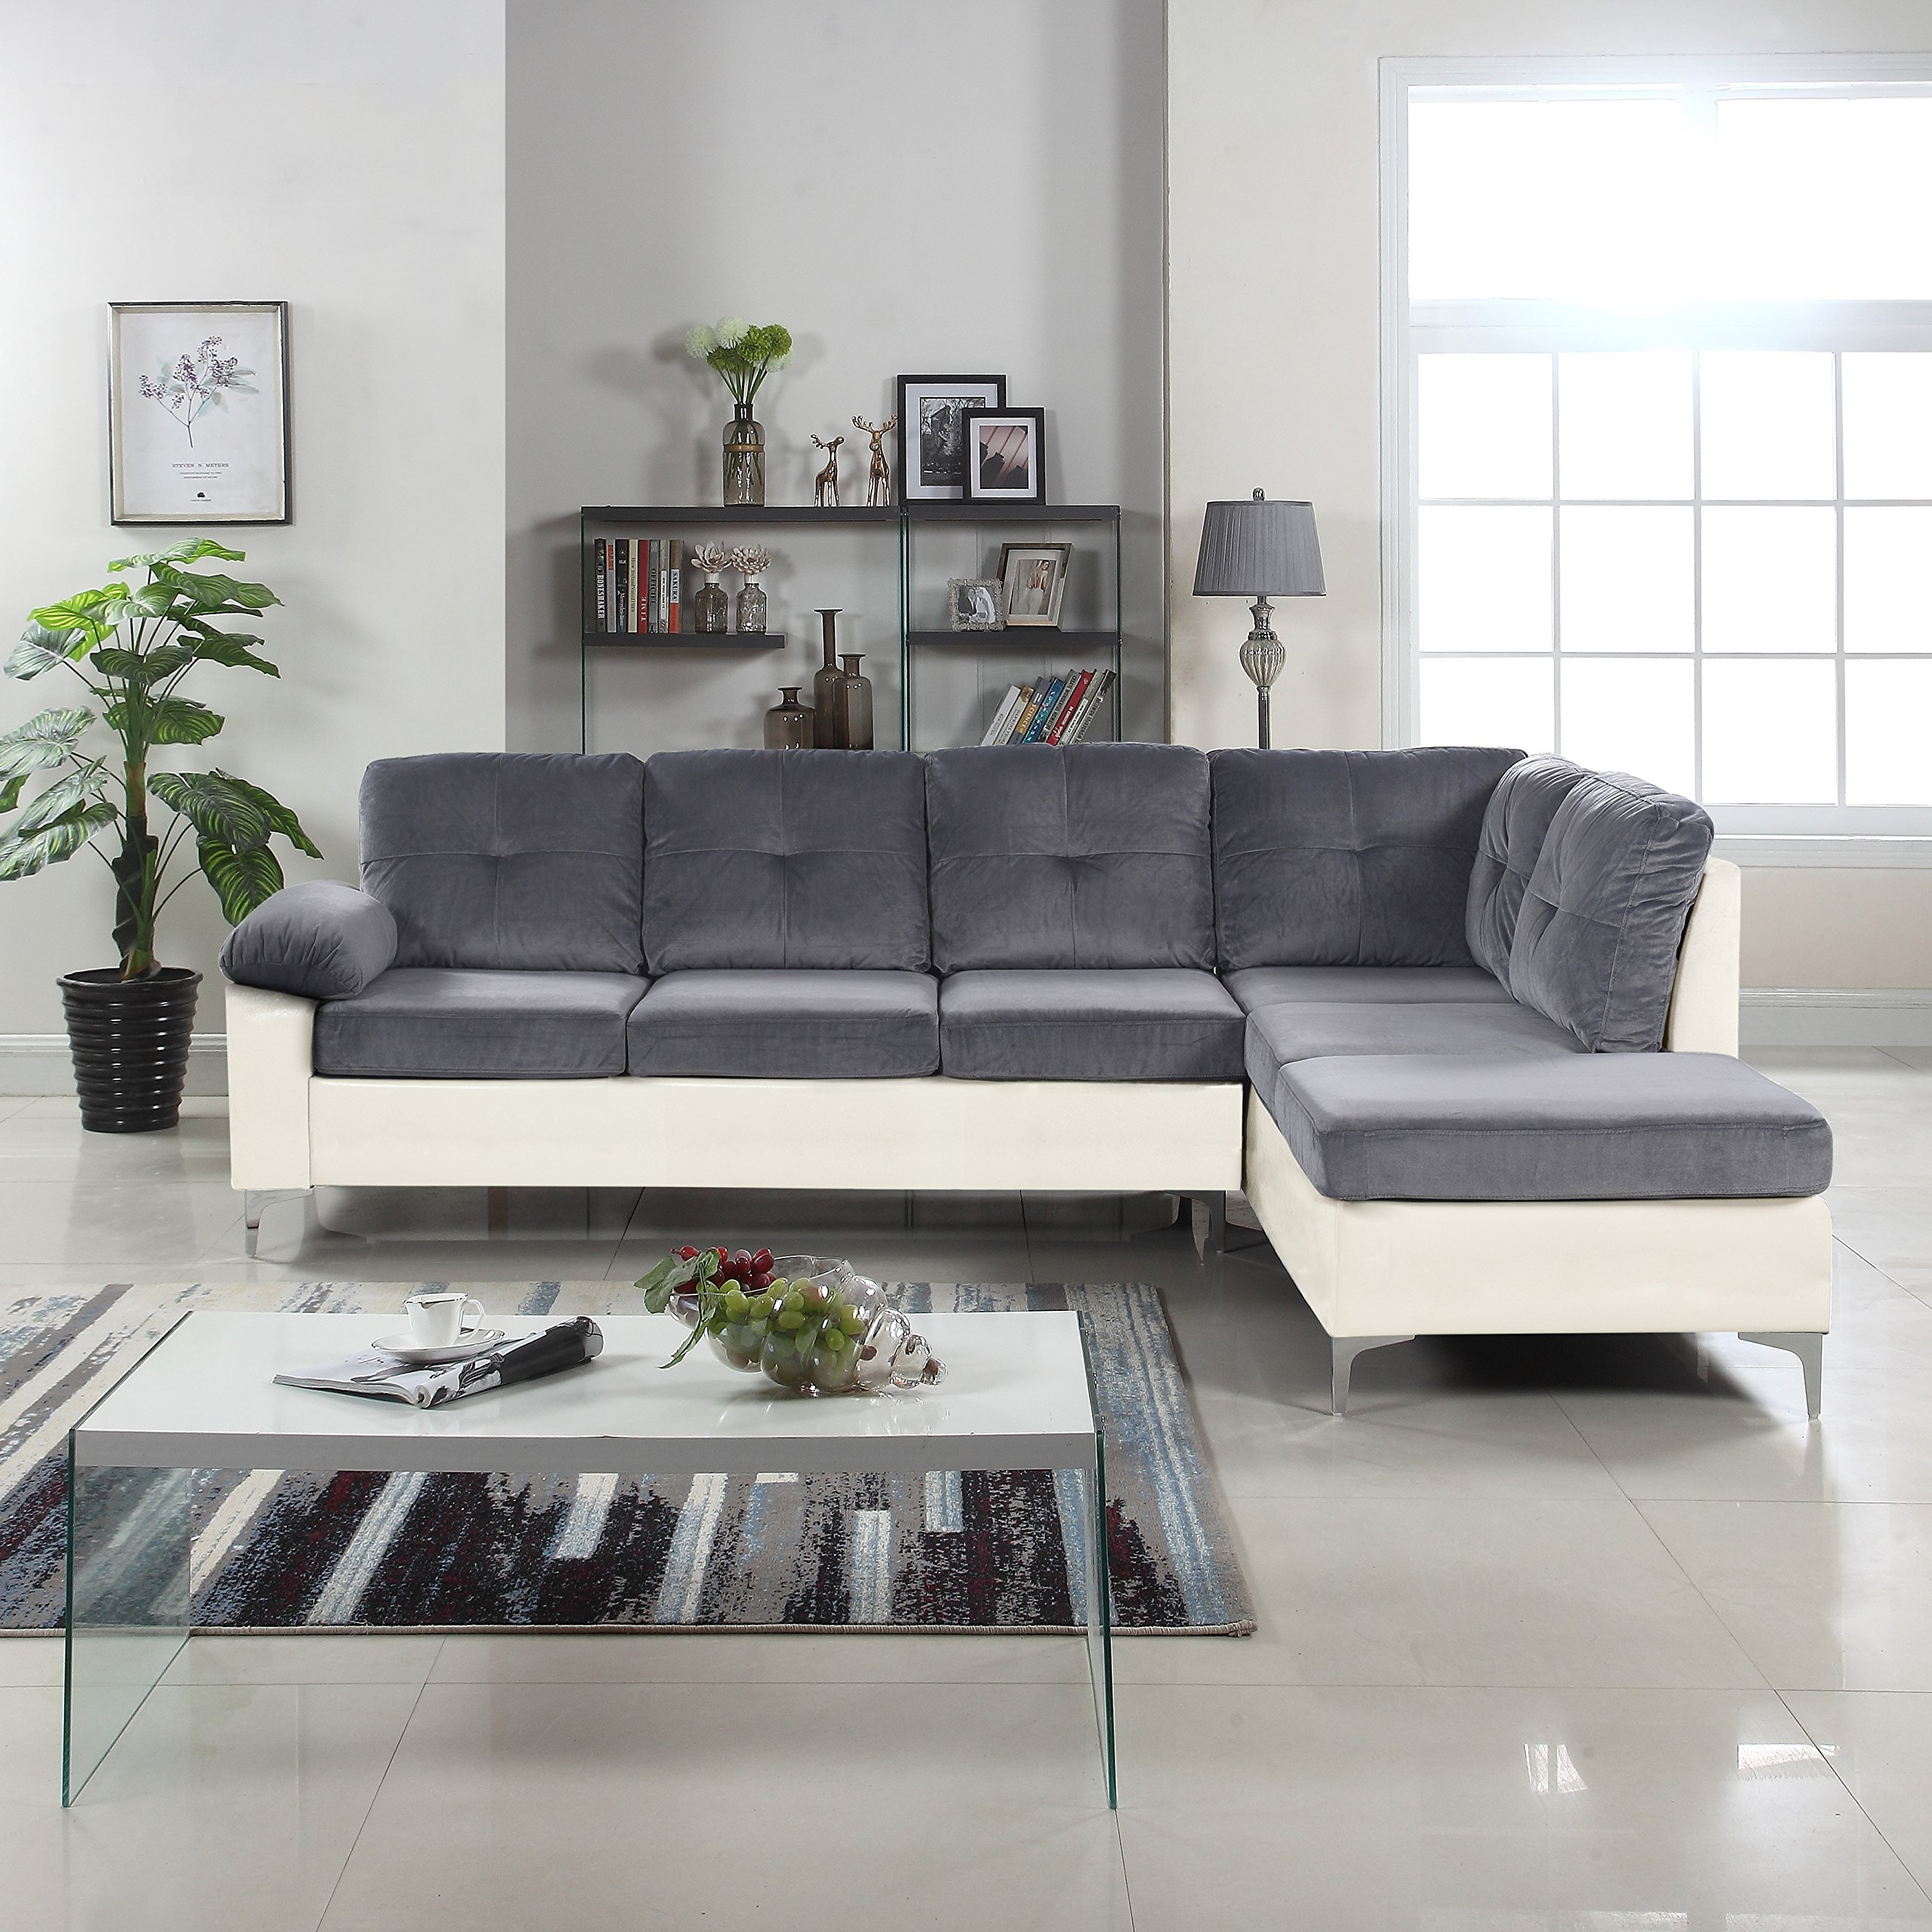 Terrific Cheap White Tufted Sectional Find White Tufted Sectional Gamerscity Chair Design For Home Gamerscityorg